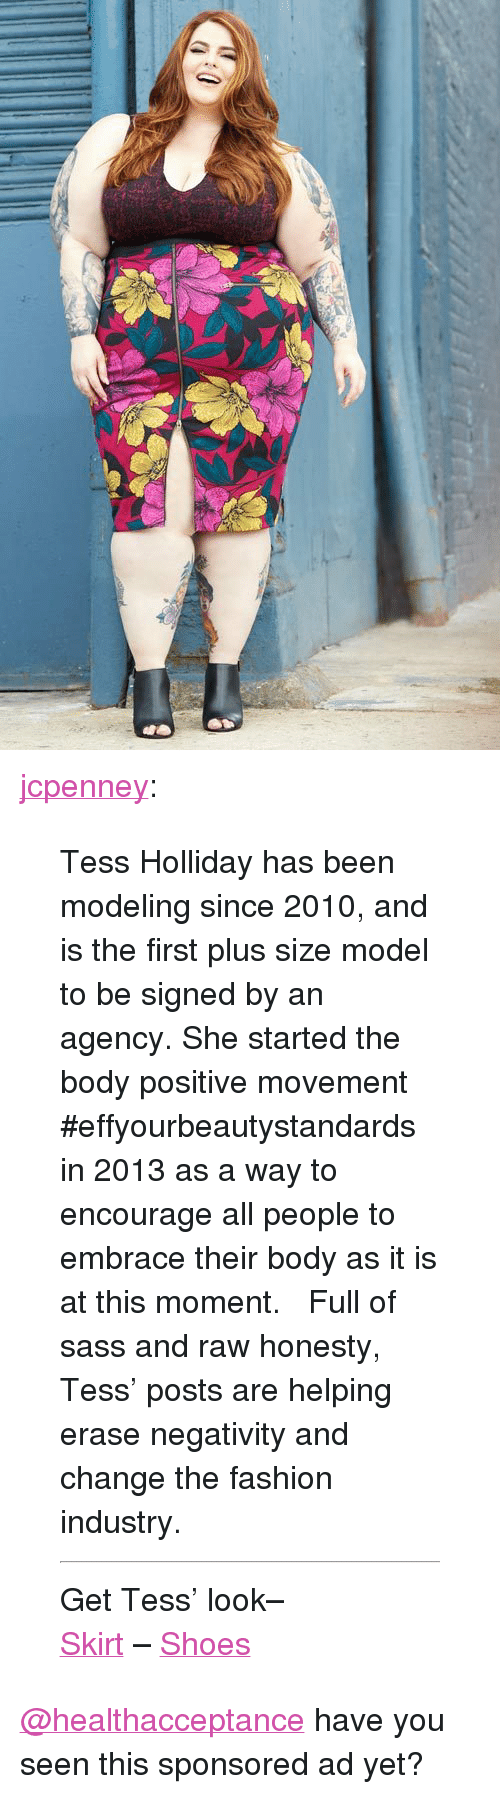 """high waist: <p><a href=""""http://jcplookbook.com/post/129512604329/tess-holliday-has-been-modeling-since-2010-and-is"""" class=""""tumblr_blog"""">jcpenney</a>:</p>  <blockquote><p>Tess Holliday has been modeling since 2010, and is the first plus size model to be signed by an agency. She started the body positive movement #effyourbeautystandards in 2013 as a way to encourage all people to embrace their body as it is at this moment.  Full of sass and raw honesty, Tess' posts are helping erase negativity and change the fashion industry.  </p><hr><p>Get Tess' look–</p><p><a href=""""http://www.jcpenney.com/worthington-high-waist-zipper-front-skirt-plus/prod.jump?ppId=pp5005870150&amp;cm_mmc=social-_-tumblr_lb-_-lookbookfall-_-tess_skirt&amp;utm_medium=social&amp;utm_source=tumblr_lb&amp;utm_campaign=lookbookfall&amp;utm_content=tess_skirt"""">Skirt</a> – <a href=""""http://www.jcpenney.com/ana-juliette-high-heel-shoes/prod.jump?ppId=pp5005521495&amp;cm_mmc=social-_-tumblr_lb-_-lookbookfall-_-tess_shoes&amp;utm_medium=social&amp;utm_source=tumblr_lb&amp;utm_campaign=lookbookfall&amp;utm_content=tess_shoes"""">Shoes</a></p></blockquote>  <a class=""""tumblelog"""" href=""""http://tmblr.co/ml4pRKM6YwSZe_OYYQQRC2A"""">@healthacceptance</a> have you seen this sponsored ad yet?"""